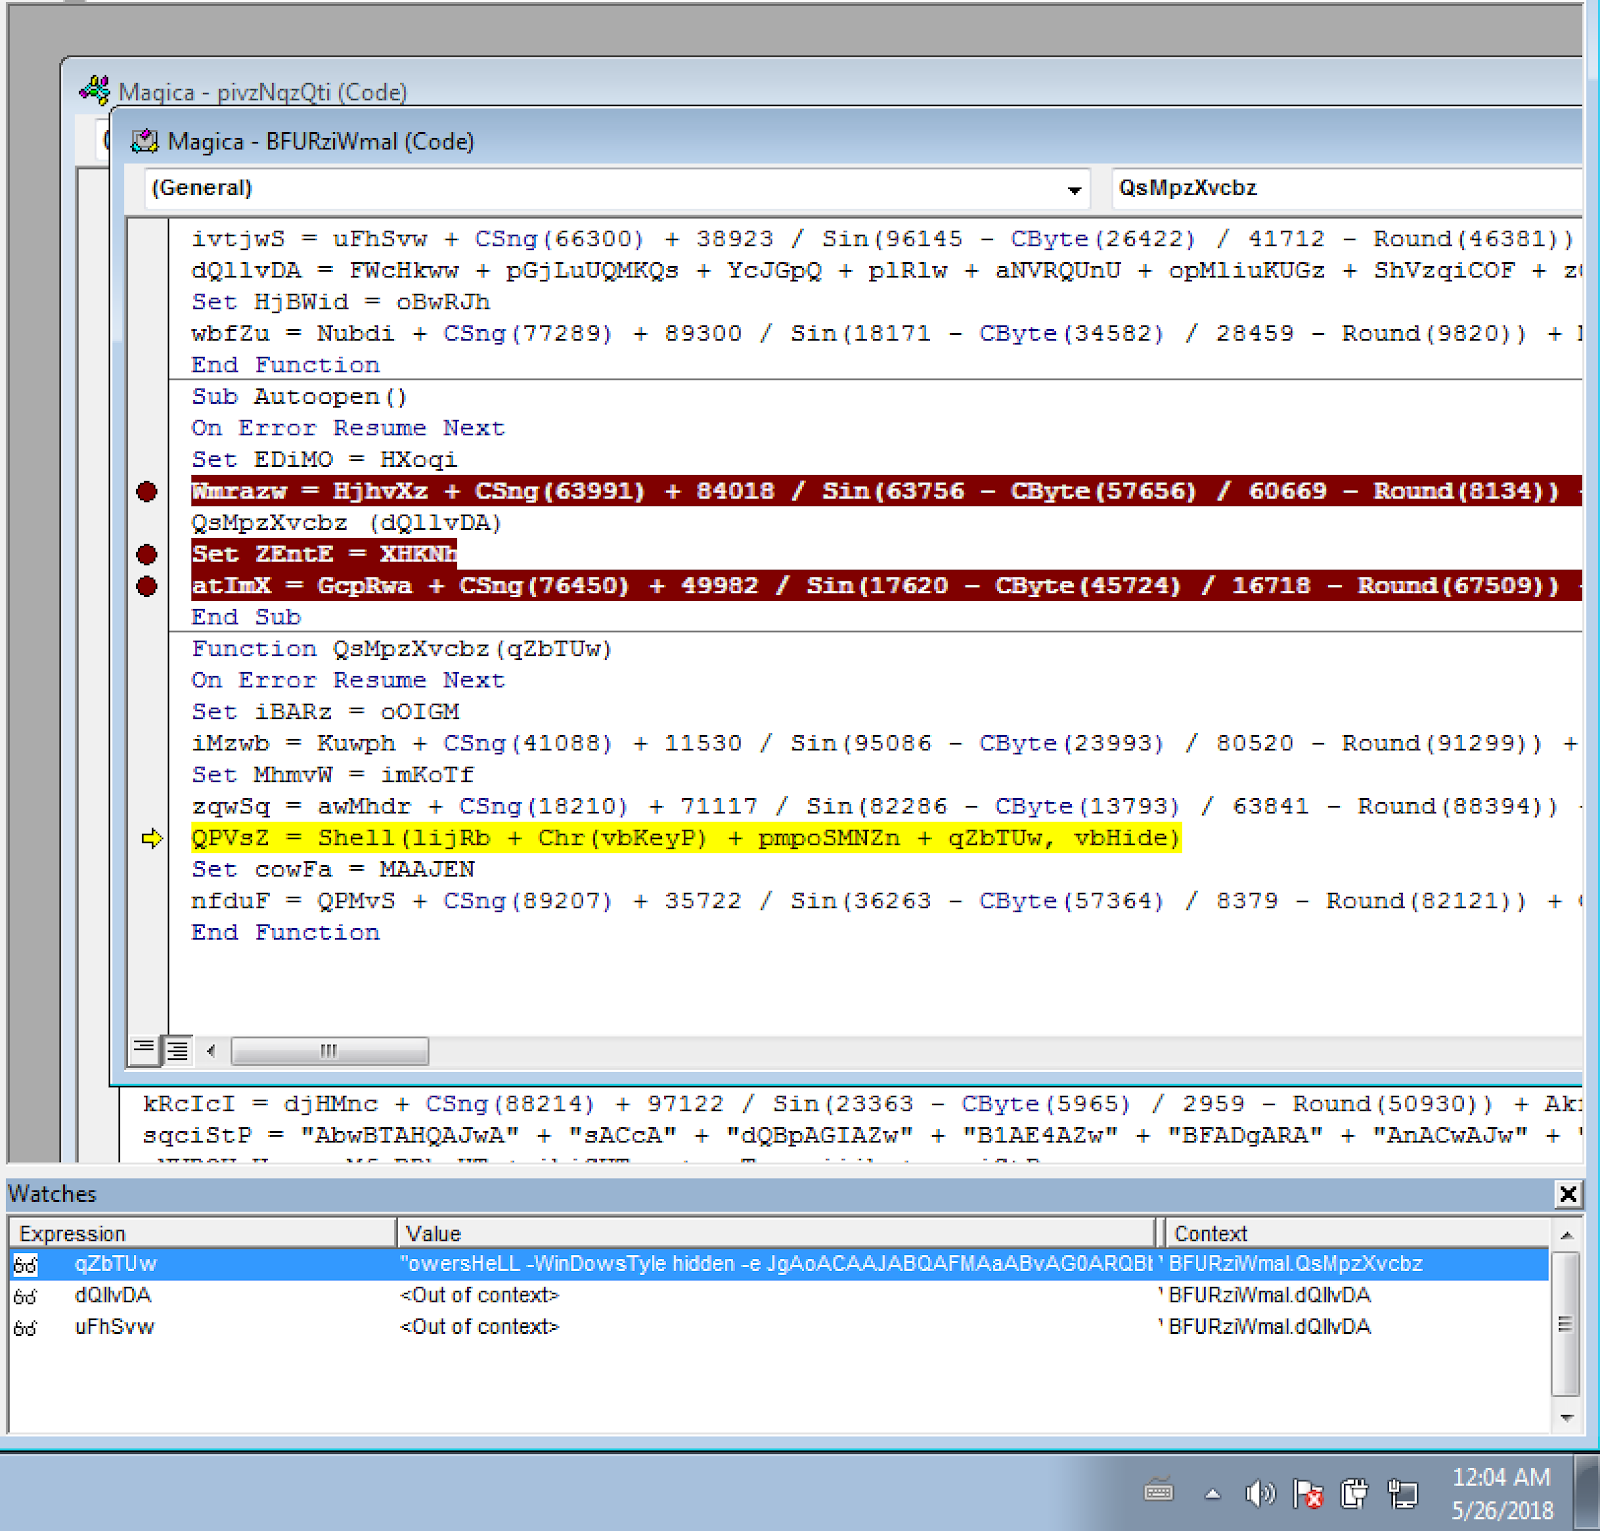 MalHide Malware uses the compromised system as an eMail relay